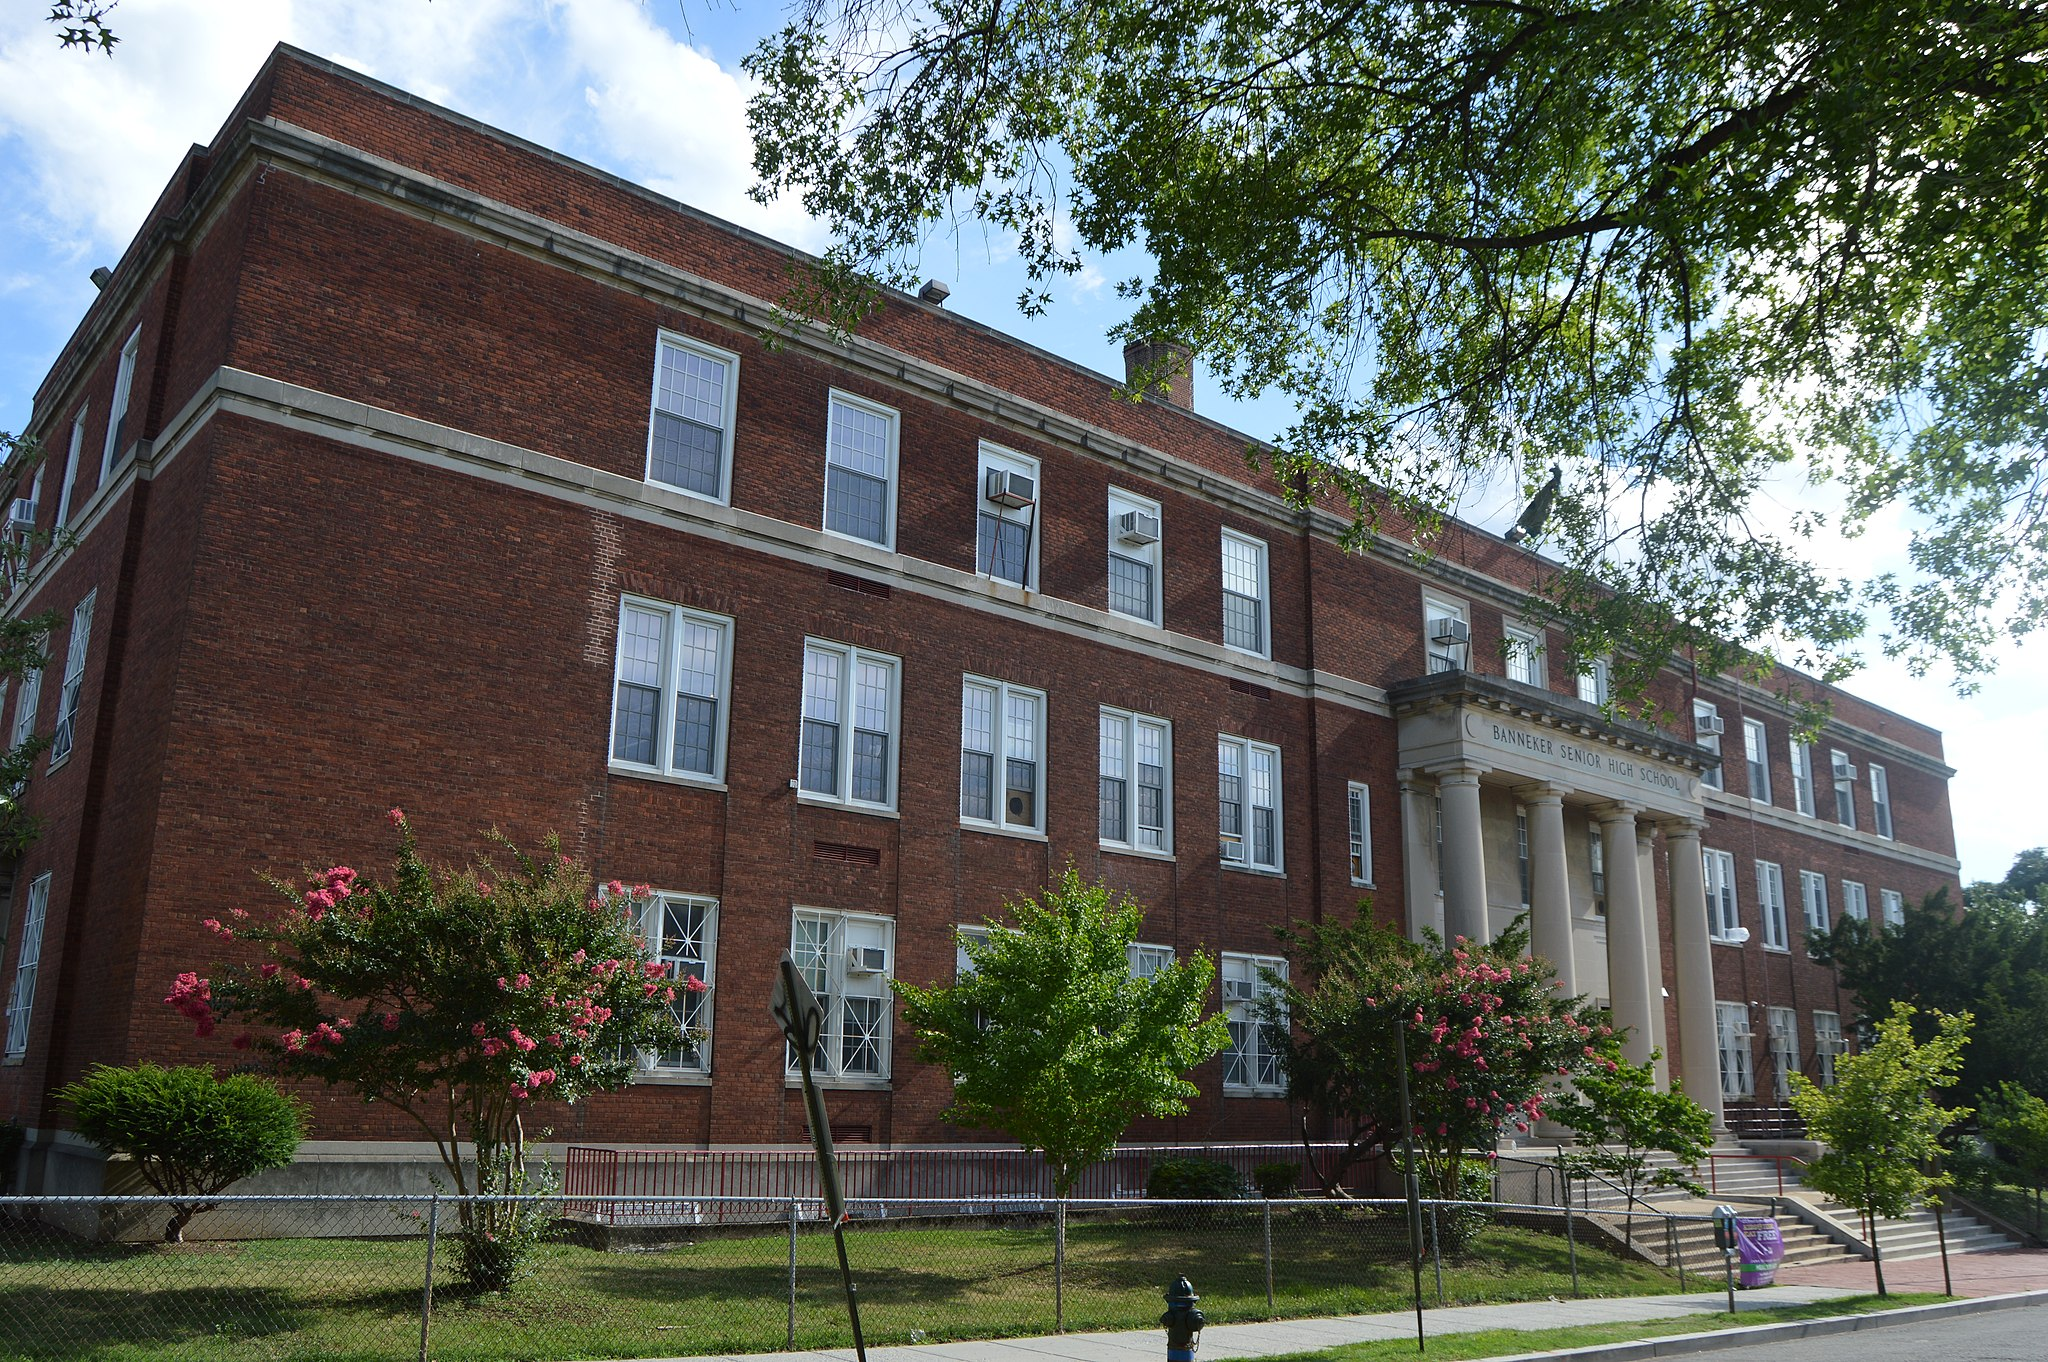 Benjamin Banneker Senior High School (Nyttend, Wikimedia Commons)